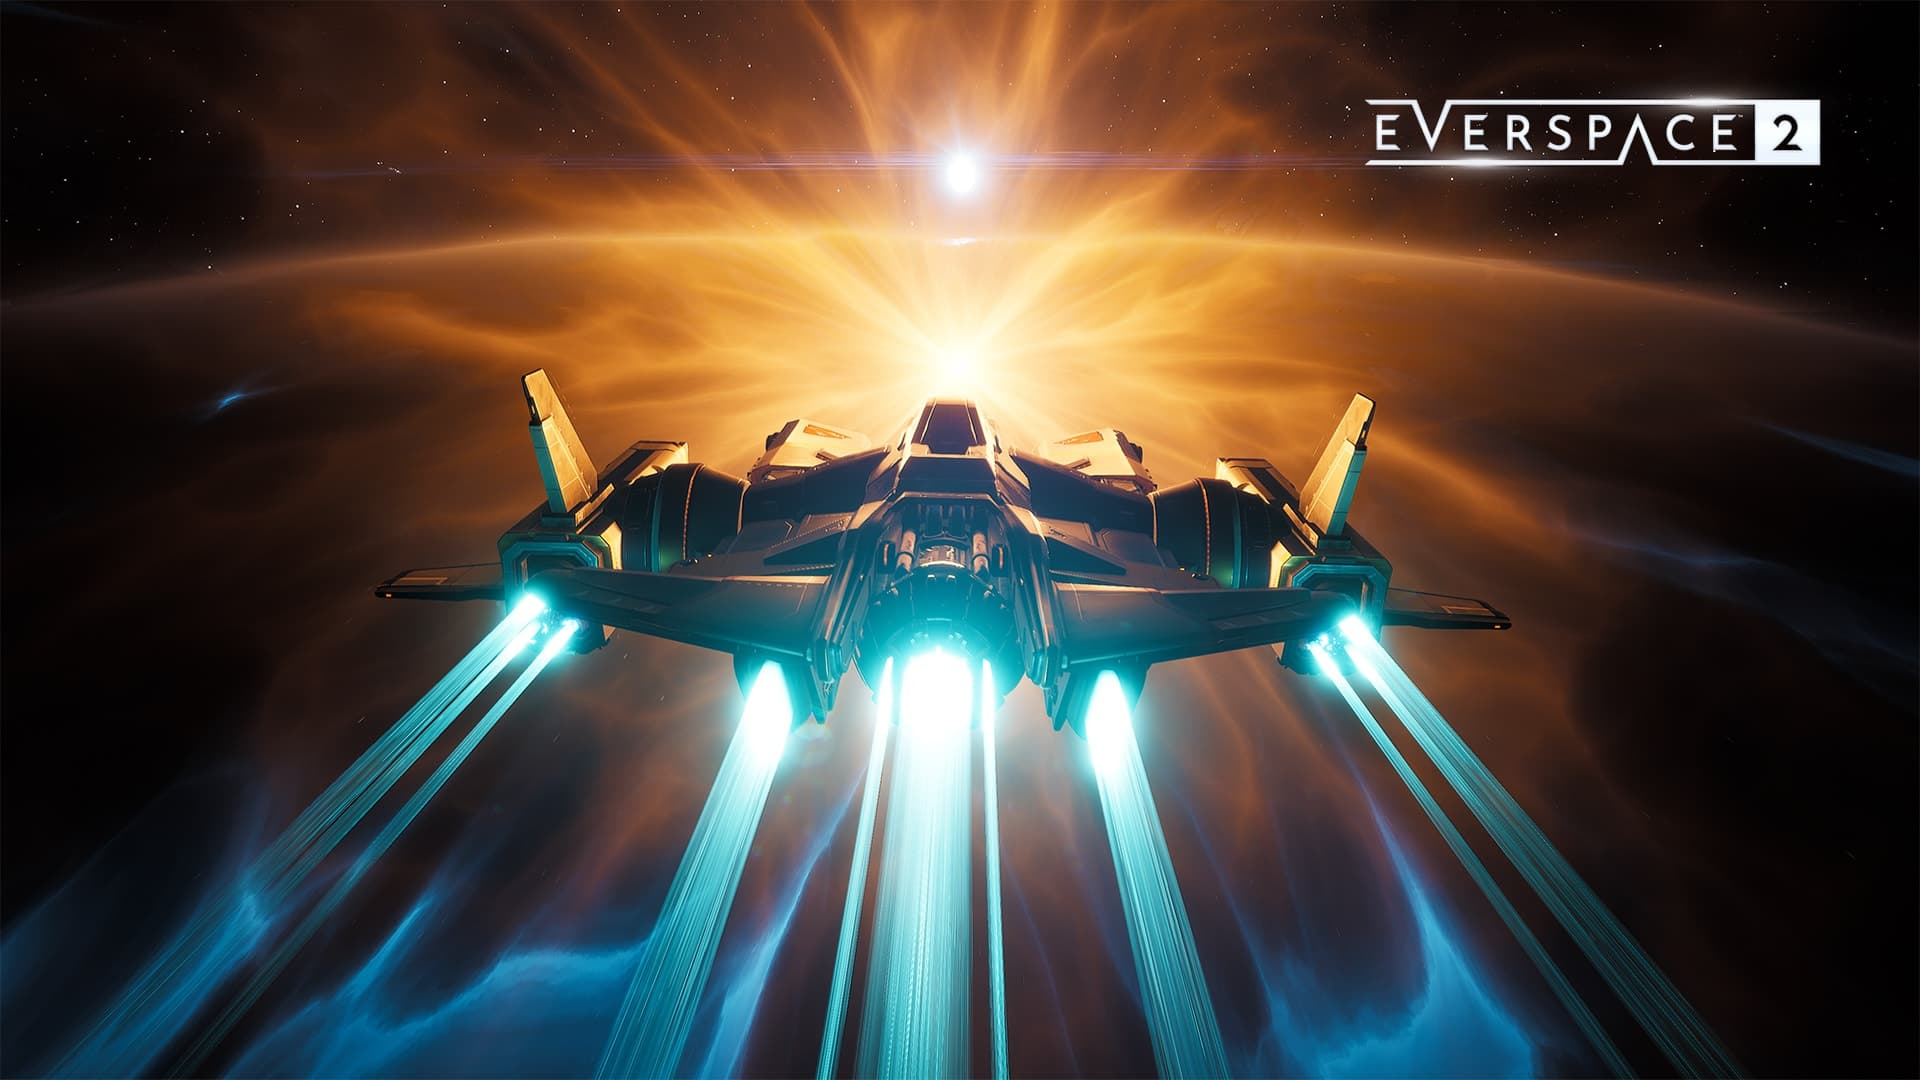 Everspace 2: Rockfish's not so difficult second album